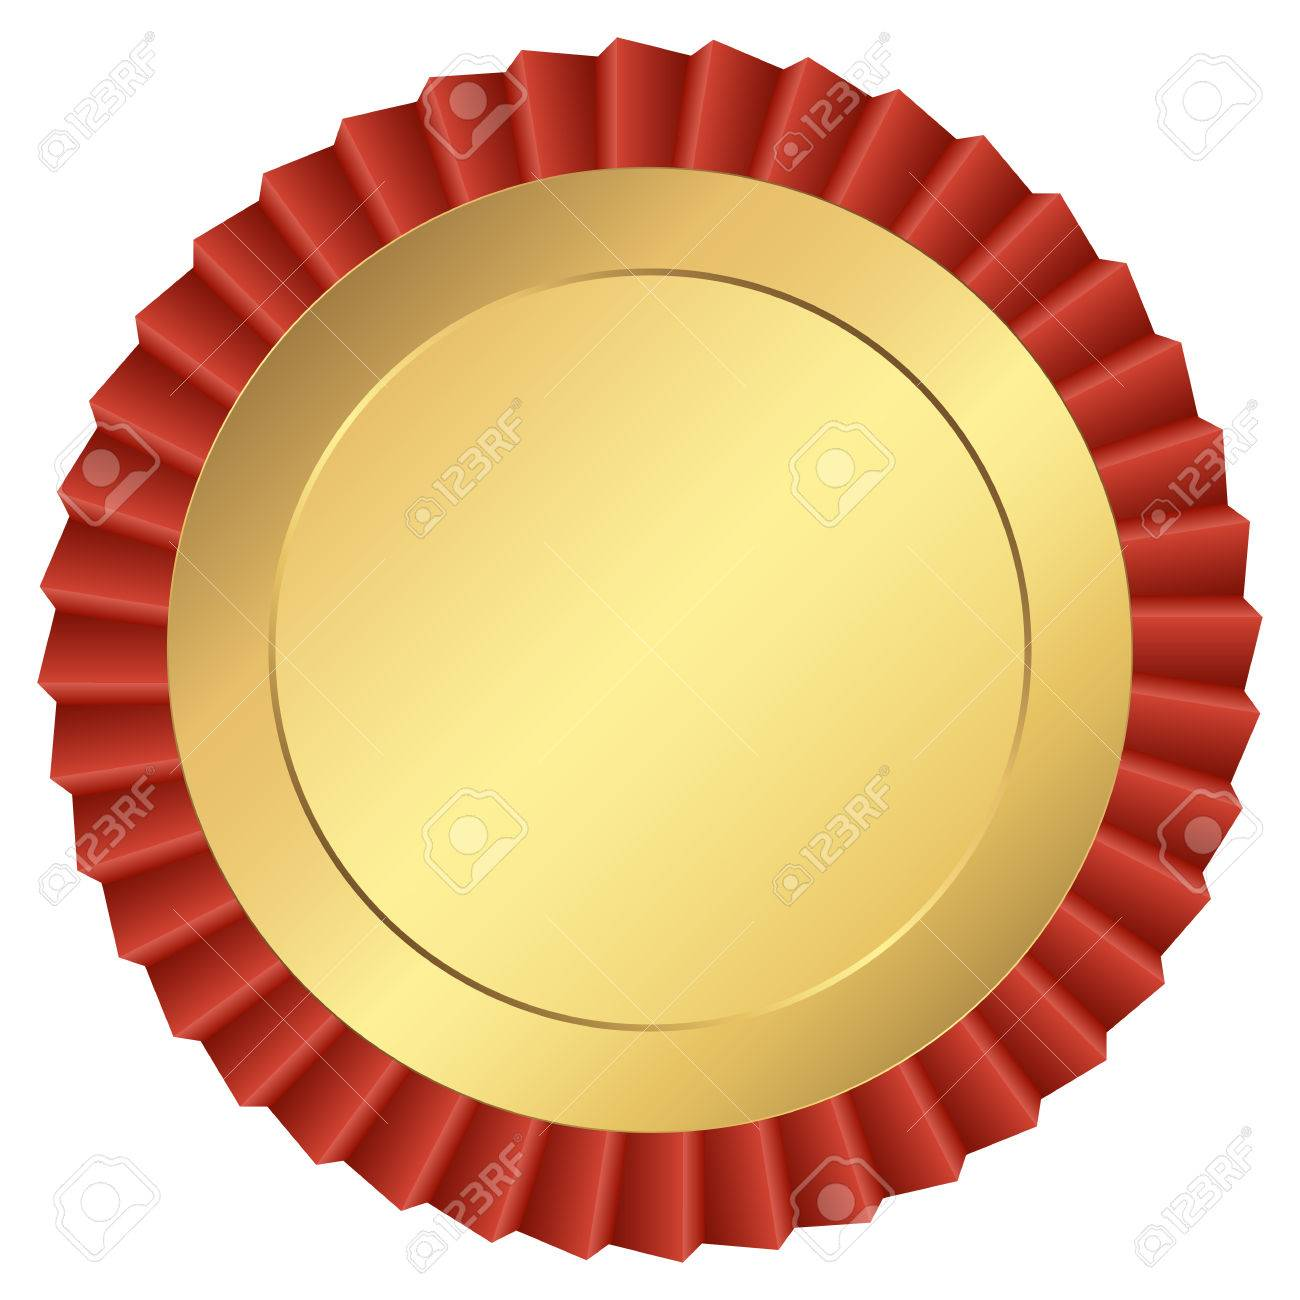 Gold Button Template With Red Ribbon Royalty Free Cliparts, Vectors ...